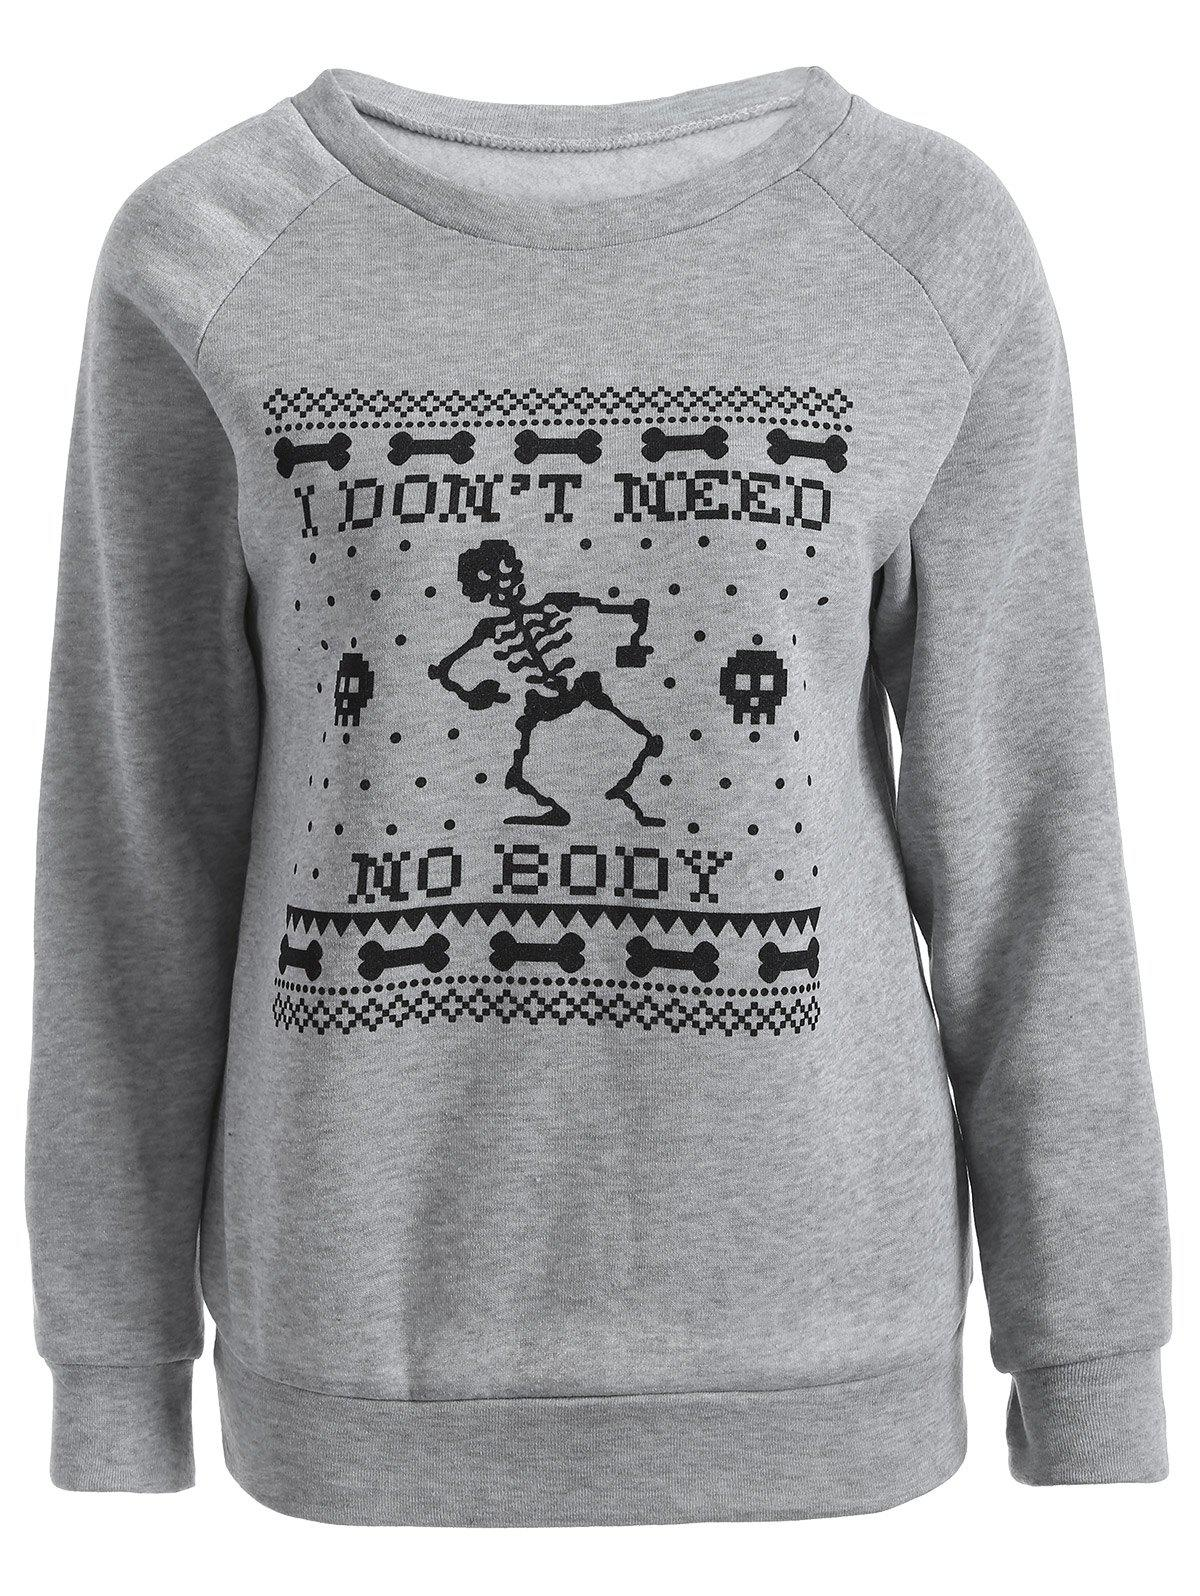 Skeleton Printed Sweatshirt - GRAY S